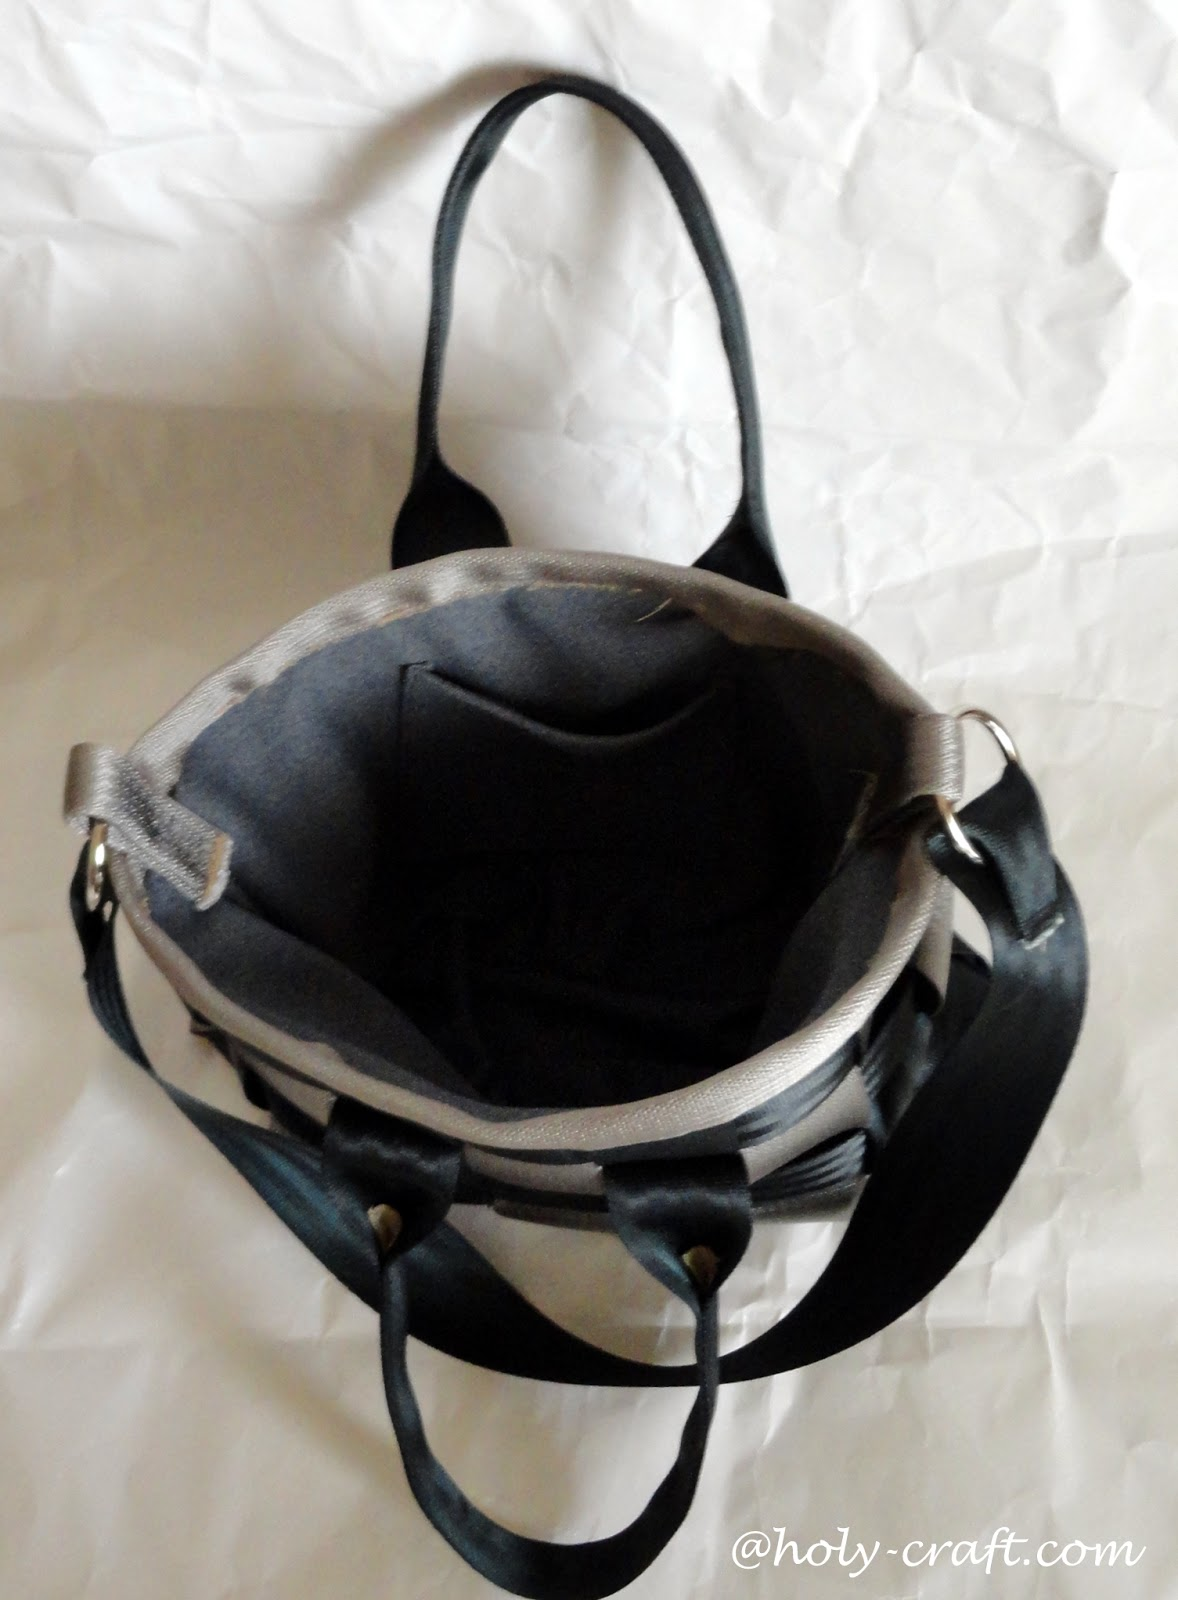 Inside diy seatbelt bag